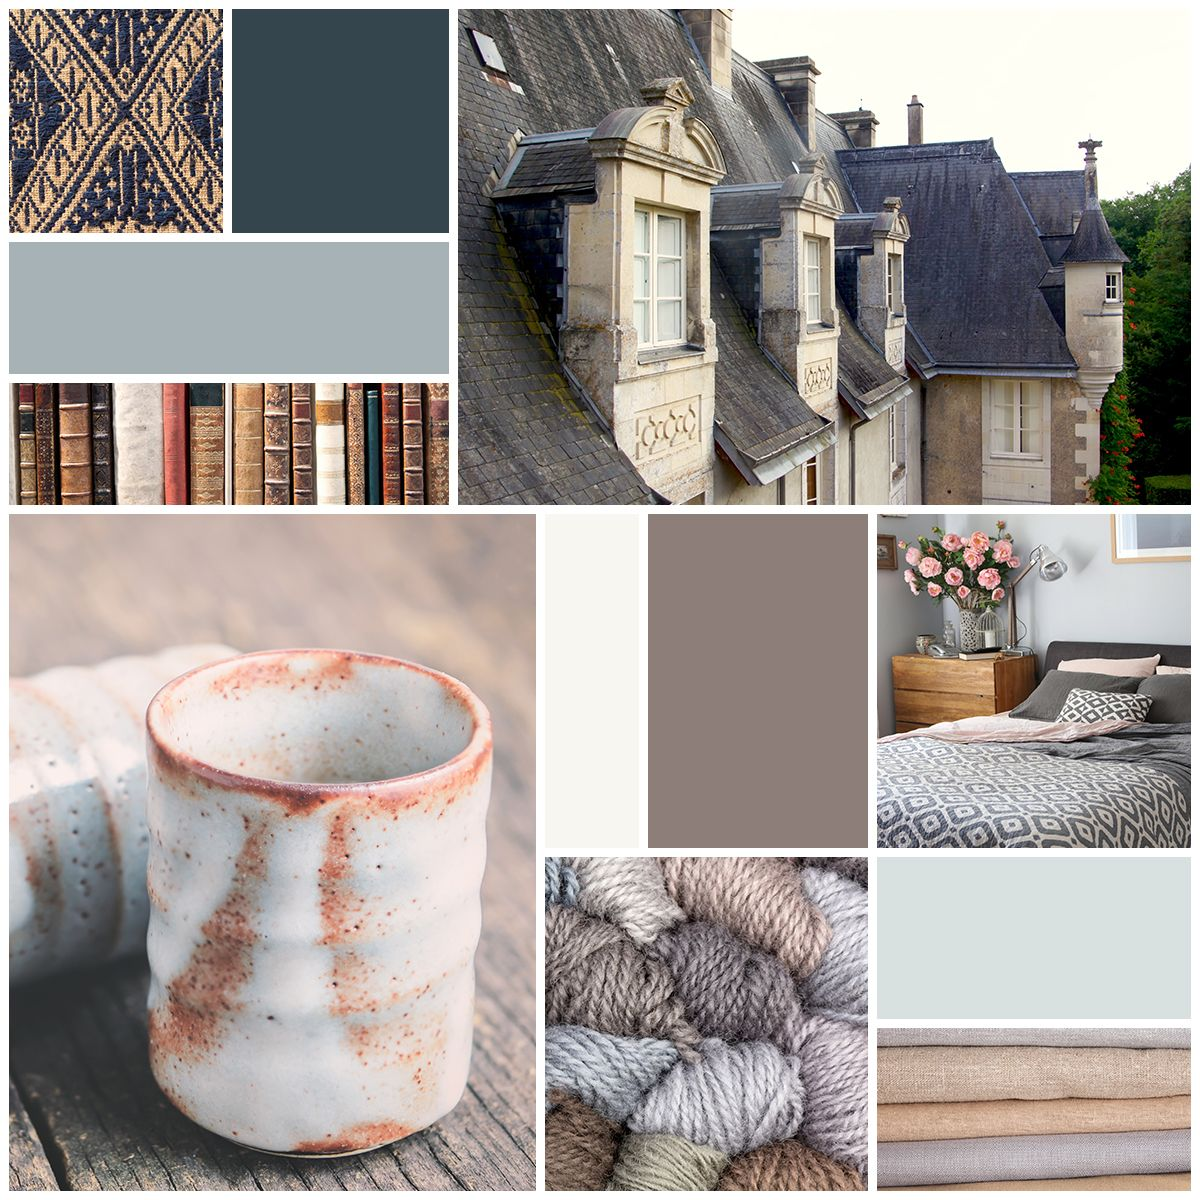 Garden Centre: Effortlessly Balancing Warm And Cool Tones, Poised Taupe